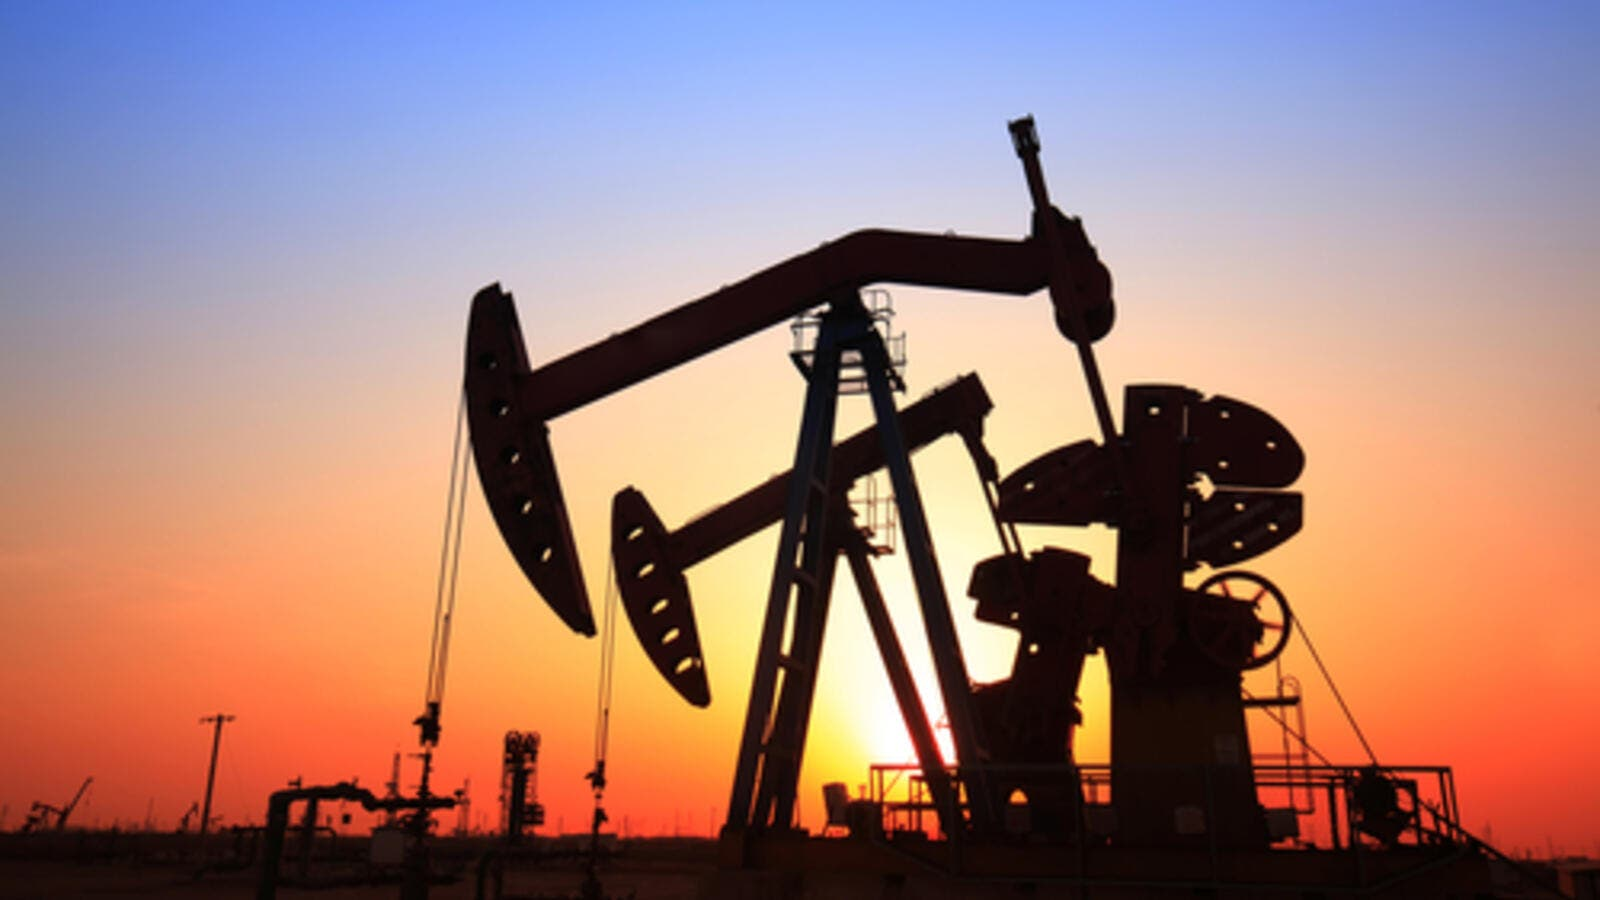 Contracts traded during the five-day period ending August 4 suggest the market expects WTI prices could range from $29 a barrel to $61 a barrel. (File photo)